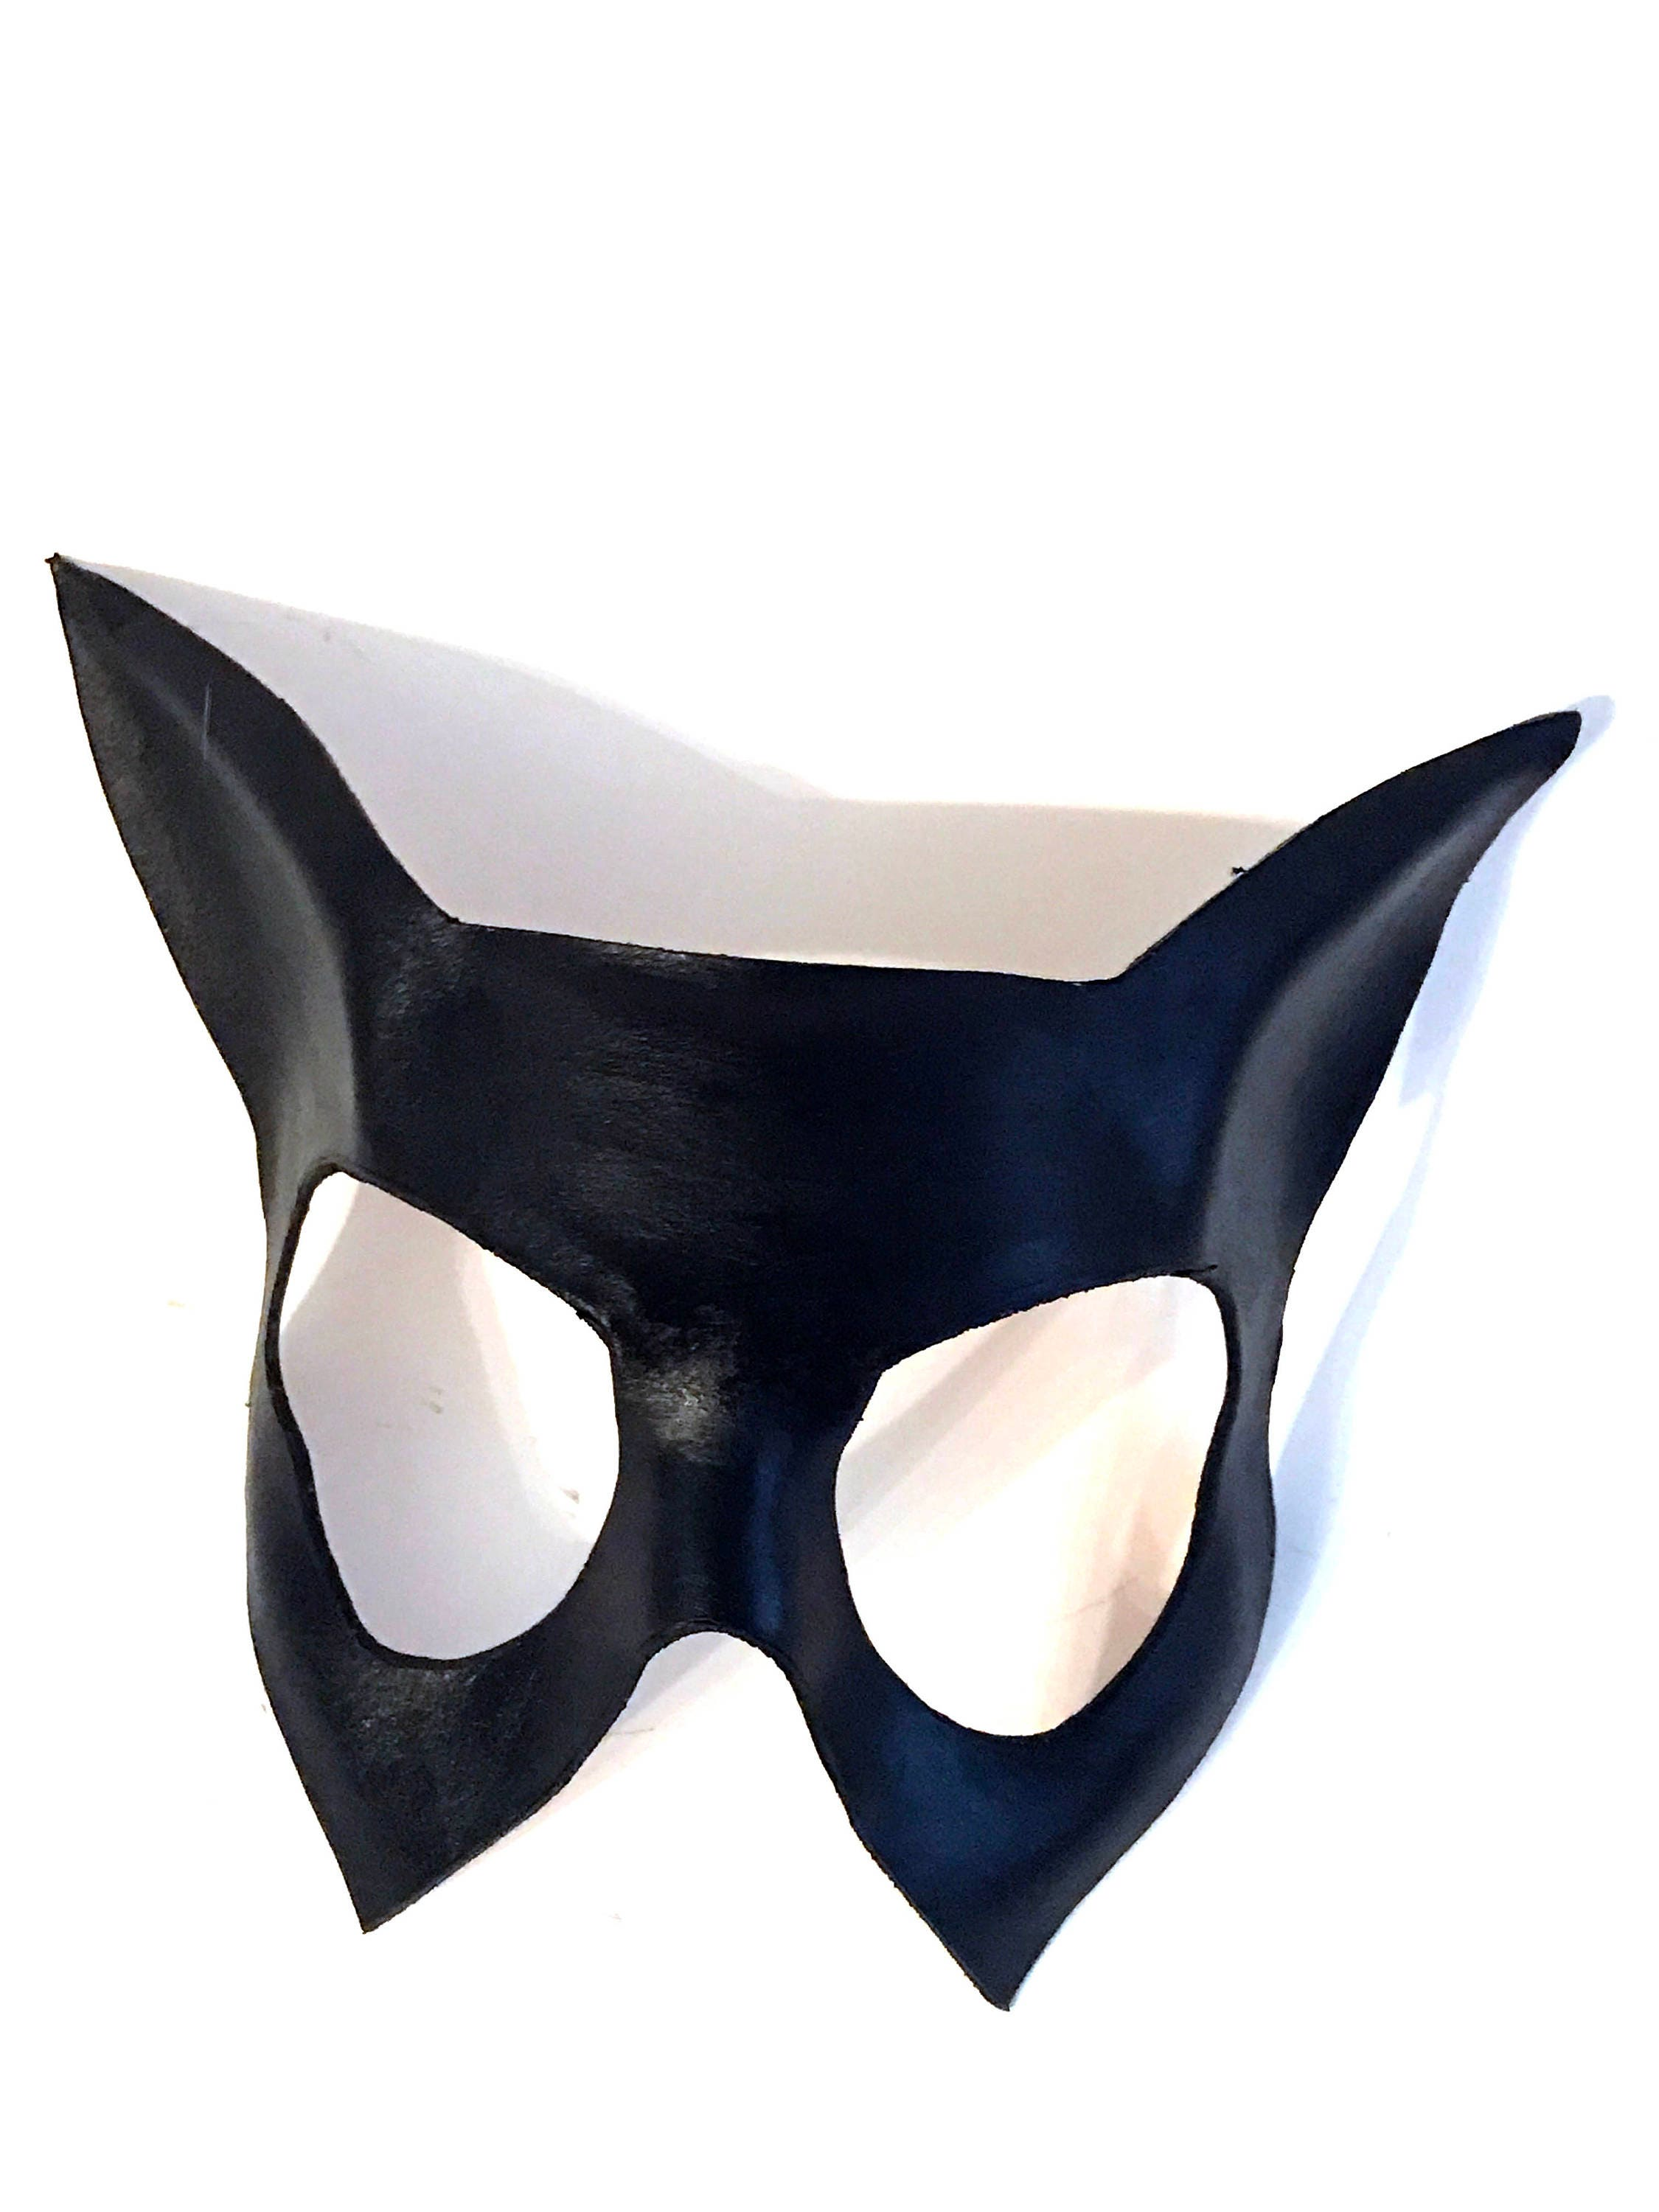 Handmade Genuine Leather Cat Mask for Masquerade Cosplay or Halloween Costumes  sc 1 st  Rockwell Masks & Handmade Genuine Leather Cat Mask for Masquerade Cosplay or ...